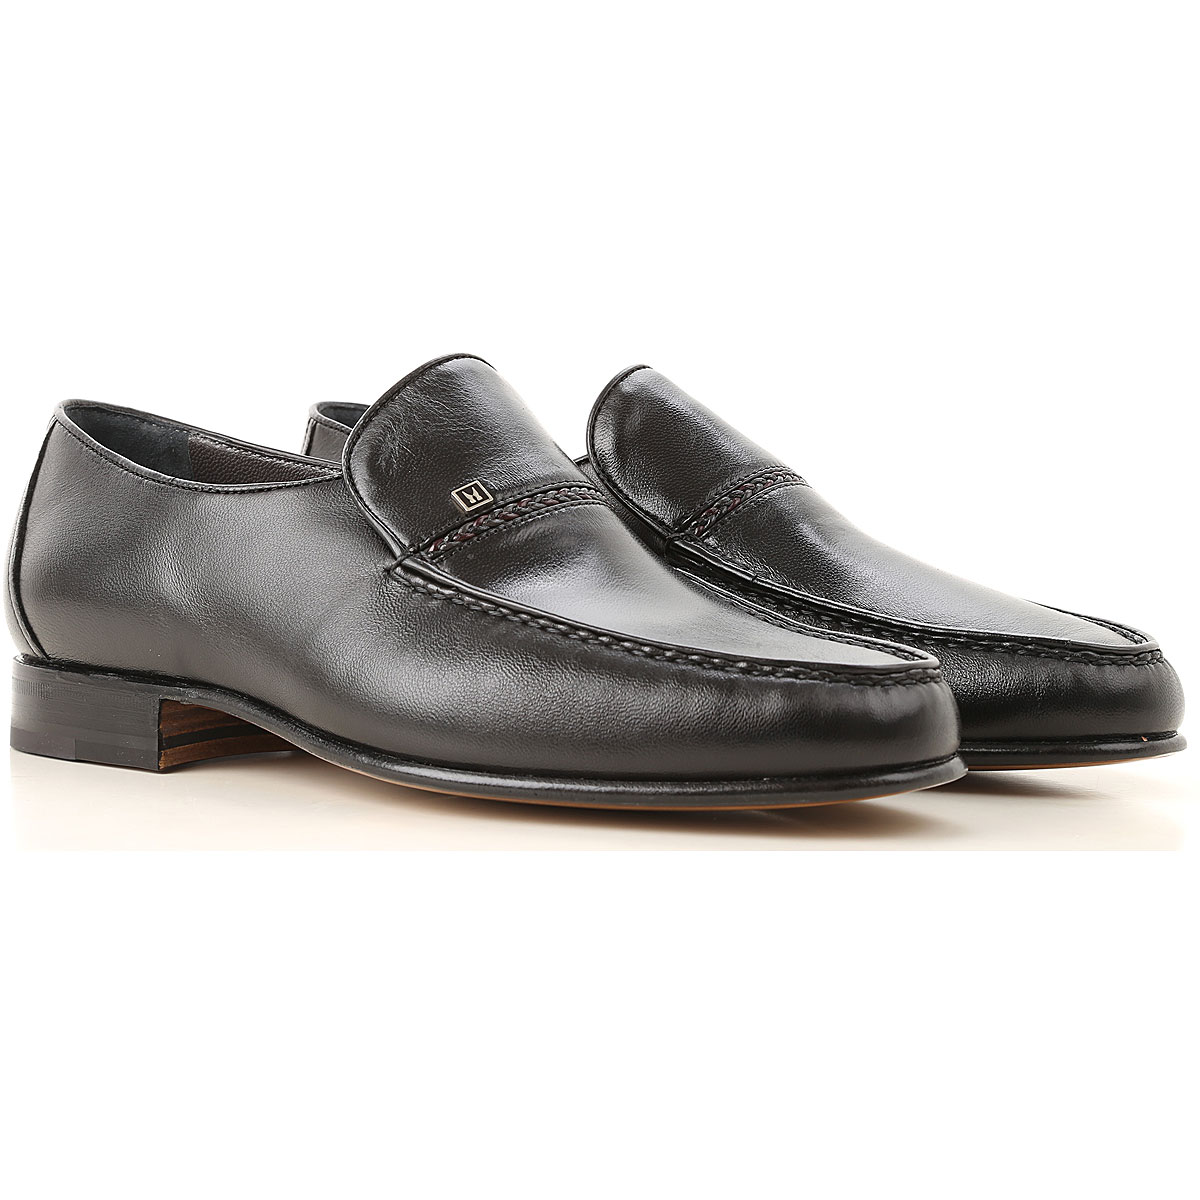 Image of Moreschi Loafers for Men, Black, Leather, 2017, 10 10.5 11 11.5 12 13 6 7 7.5 8 8.5 9 9.5